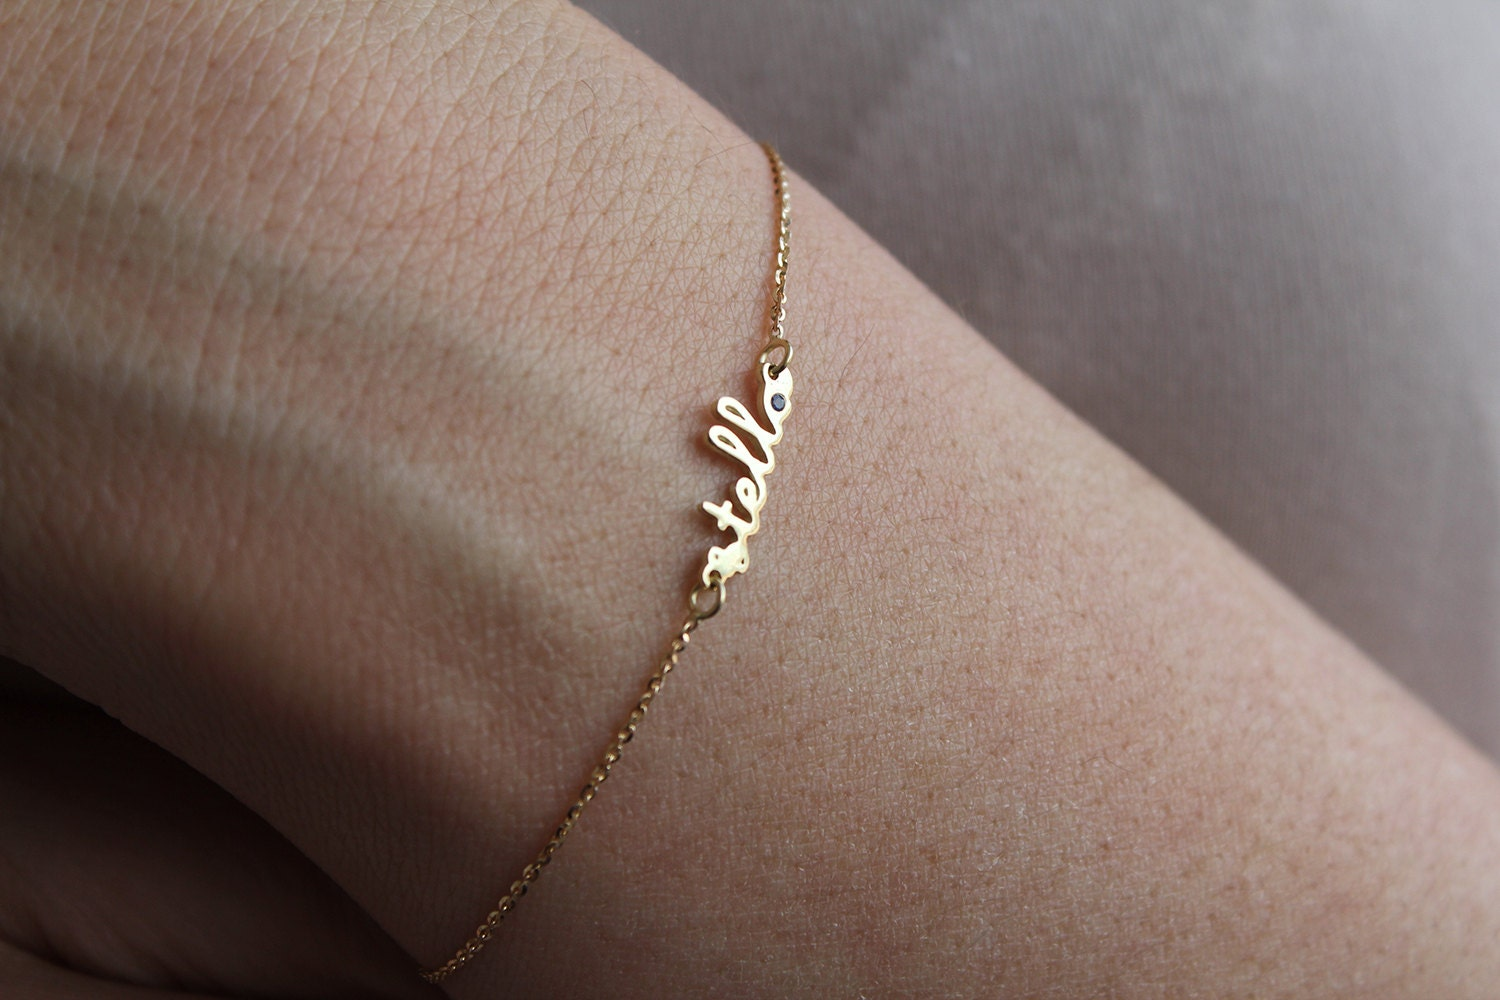 best bracelet jewelry p il friend friendship dainty personalized fullxfull gold